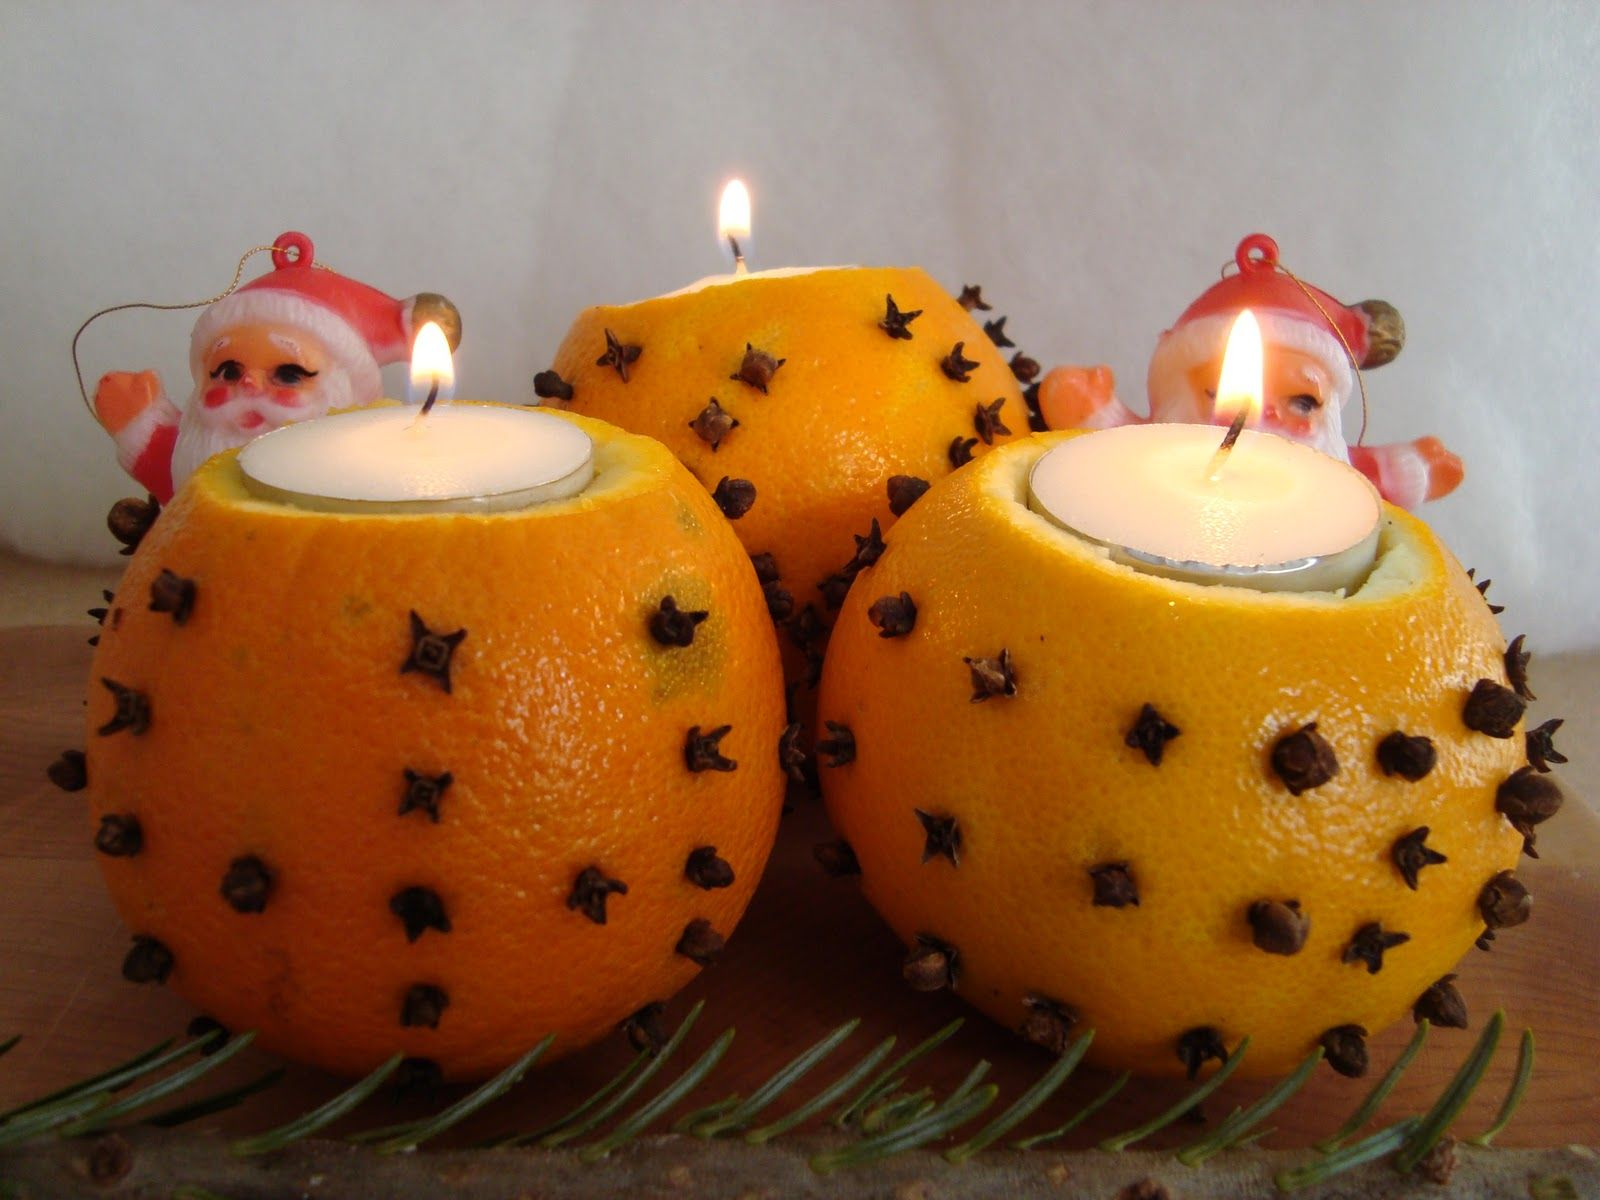 Merry Christmas Candle Crafts Fruit Decoration Ideas for Kids Children